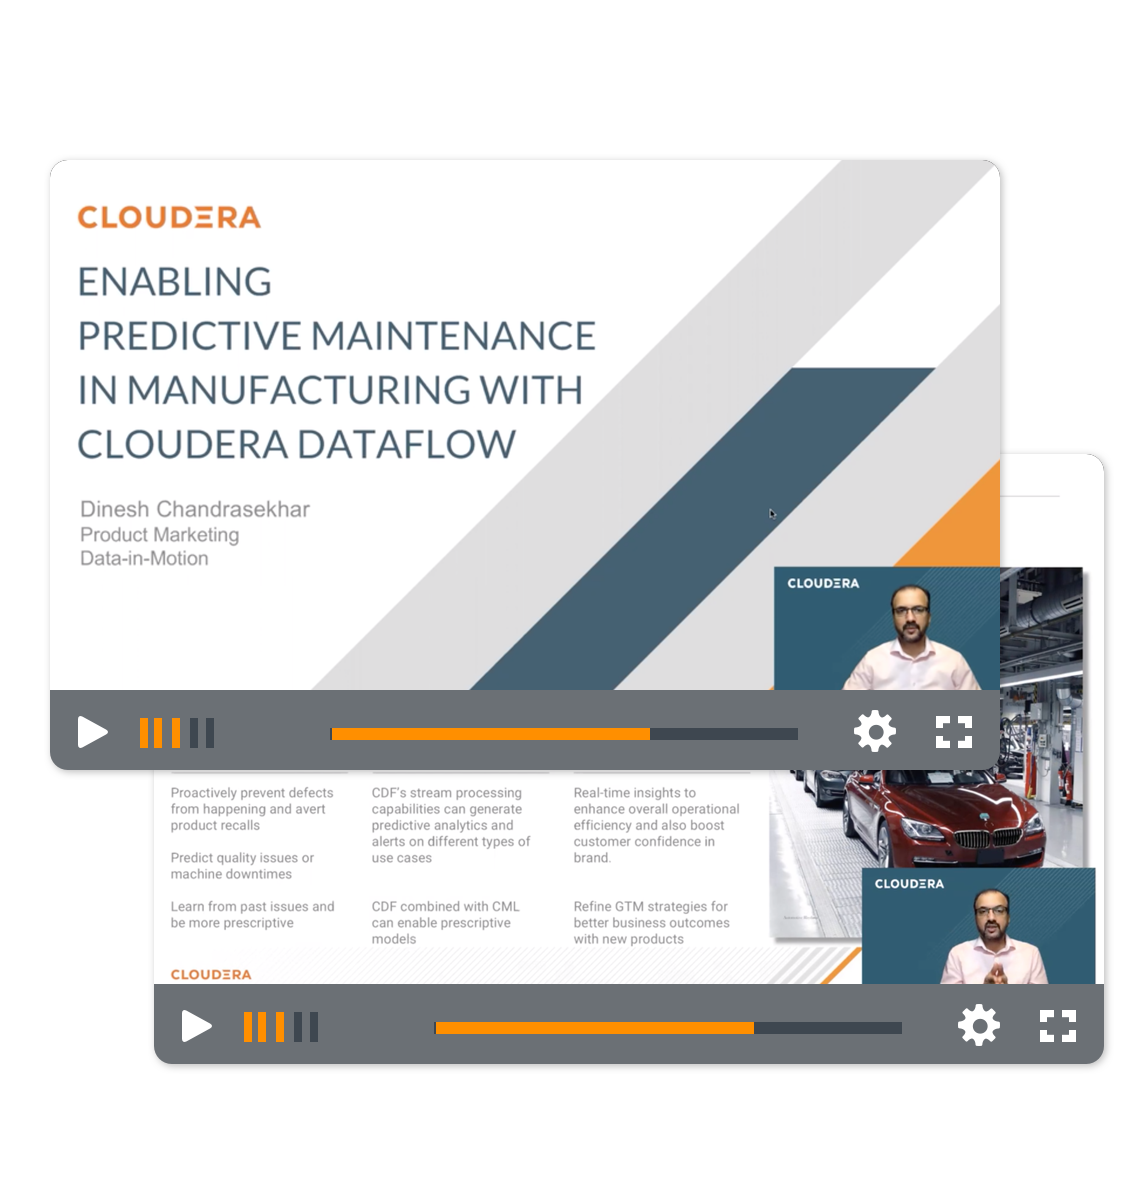 Thumbnail of TACKLING PREDICTIVE MAINTENANCE